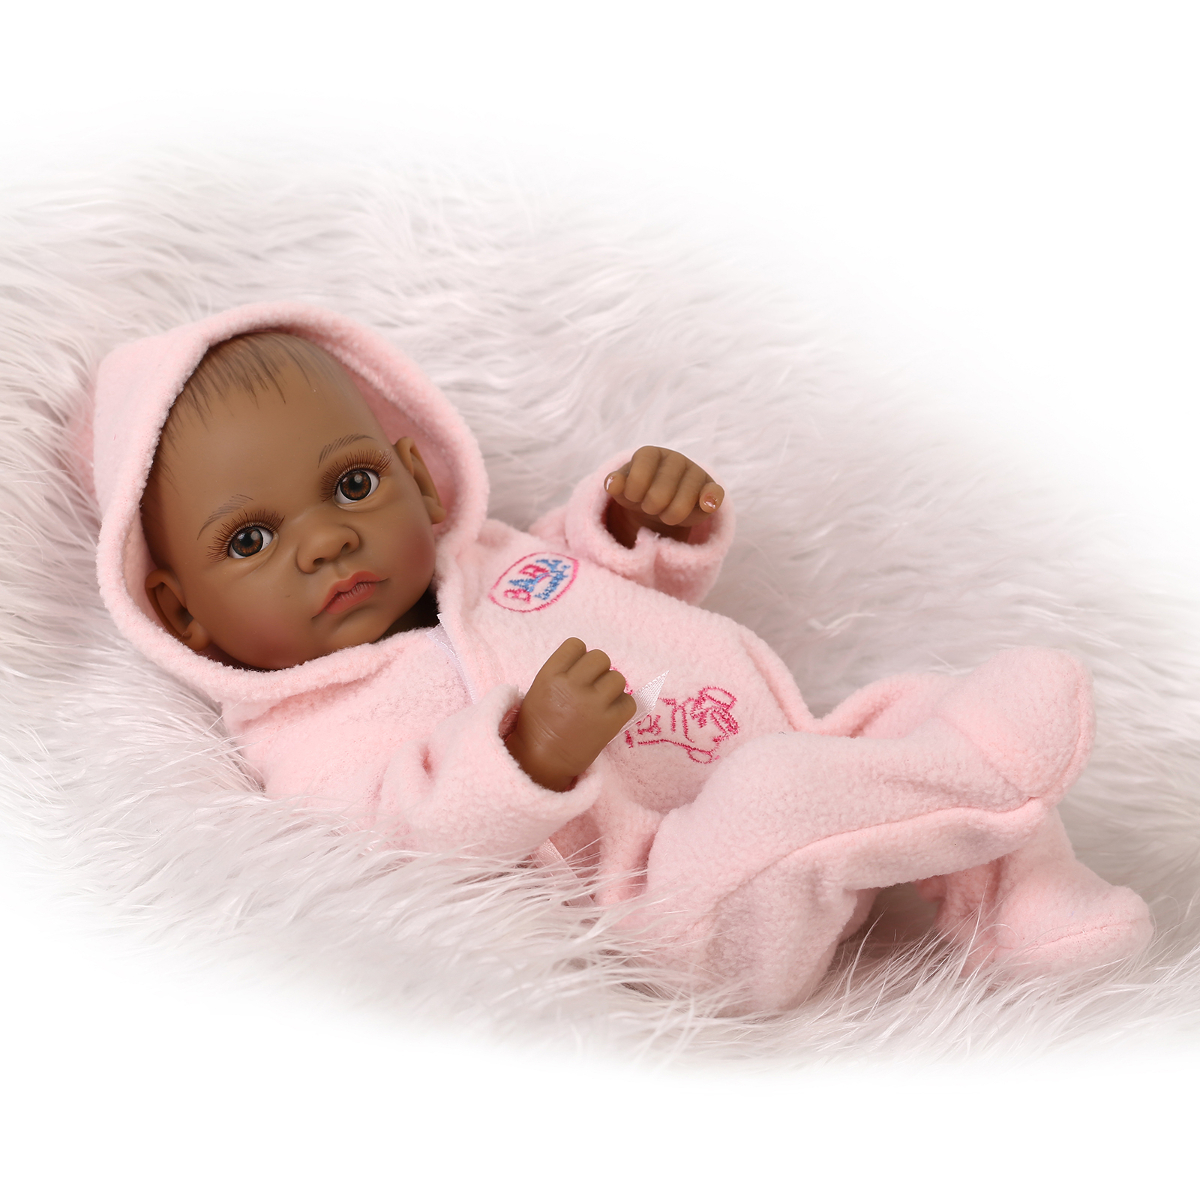 11inch African Reborn Baby Doll Silicone Lifelike Baby Play House Toy